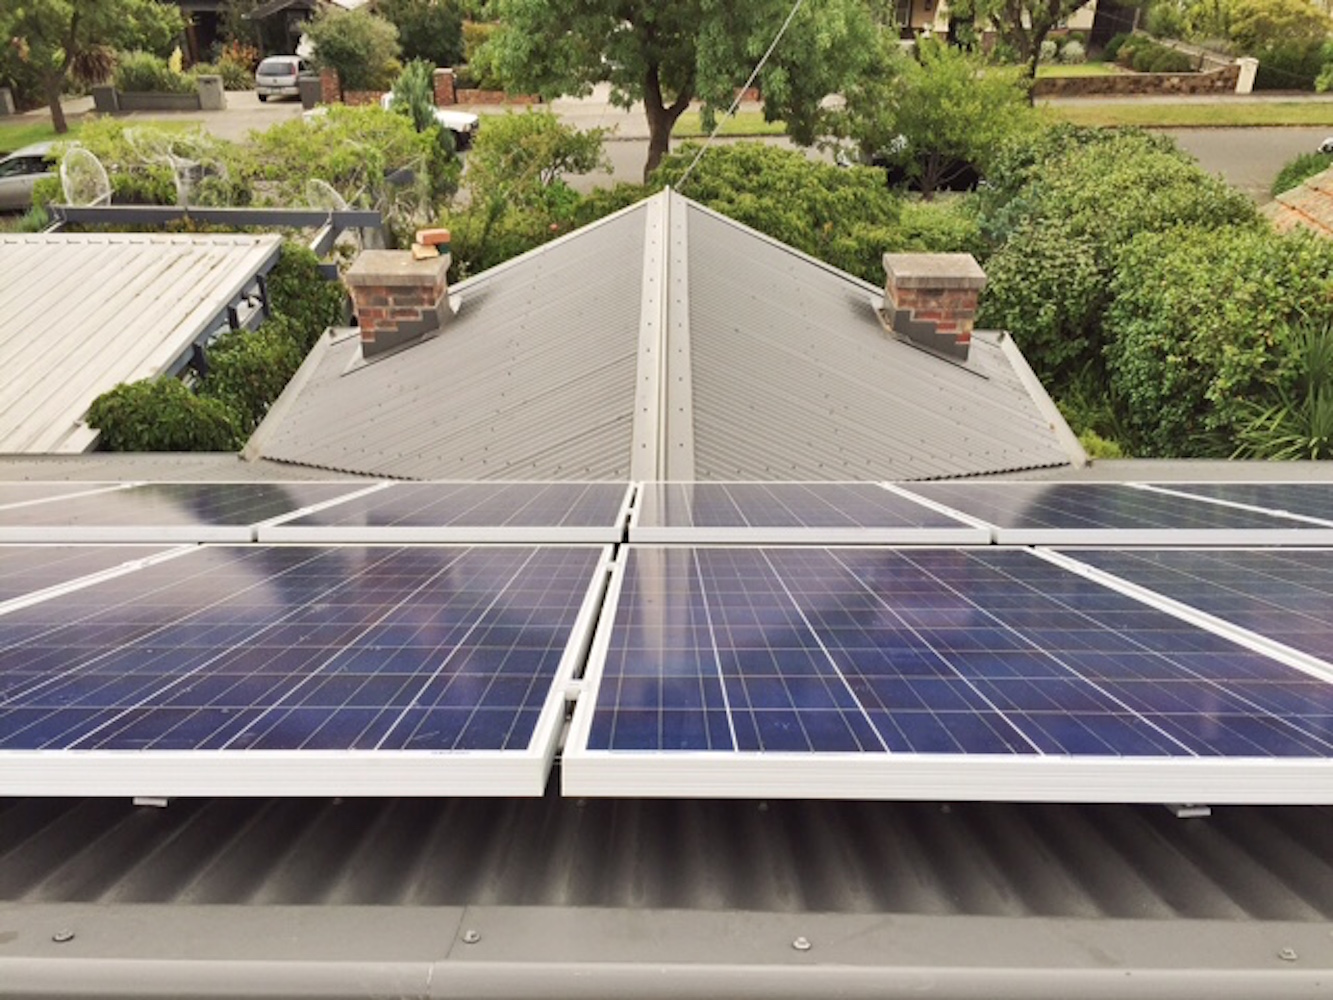 Happy customer harnesses the days solar to power house at night.